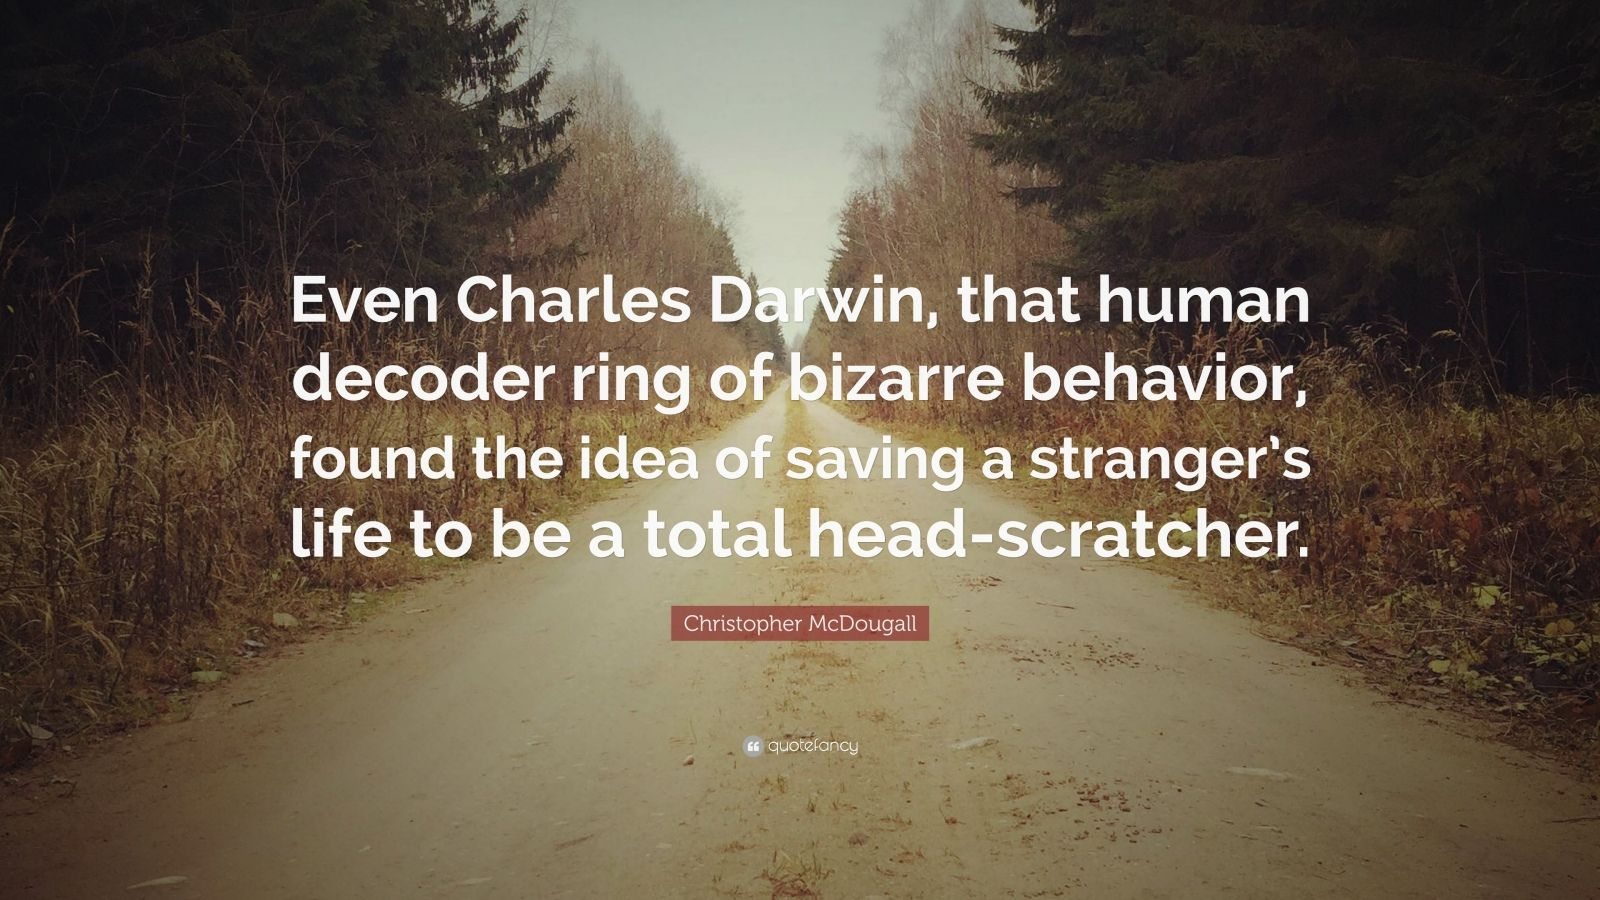 """Christopher McDougall Quote: """"Even Charles Darwin, that human decoder ring of bizarre behavior, found the idea of saving a stranger's life to be a total head-scratcher."""""""